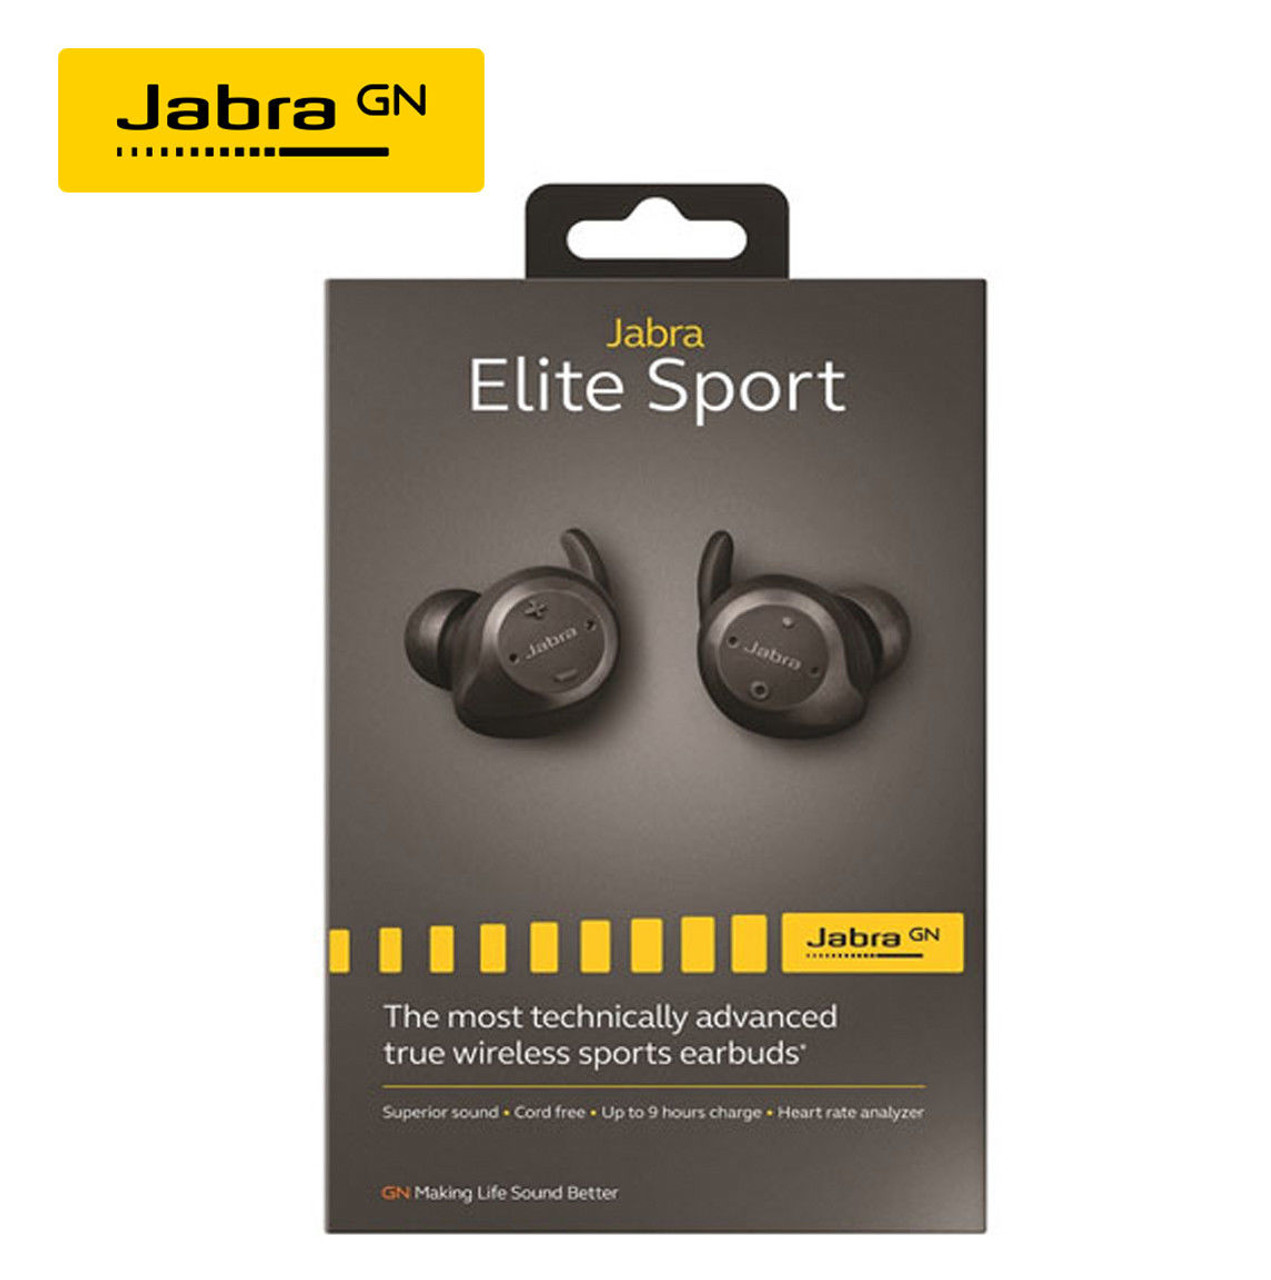 Jabra Wireless Earbuds Elite Sport Bluetooth Earbuds Bluetooth Cordless Water Dust Proof Earbuds For Android Or Apple Ios Smartphones 3yr Warranty 100 98600001 02